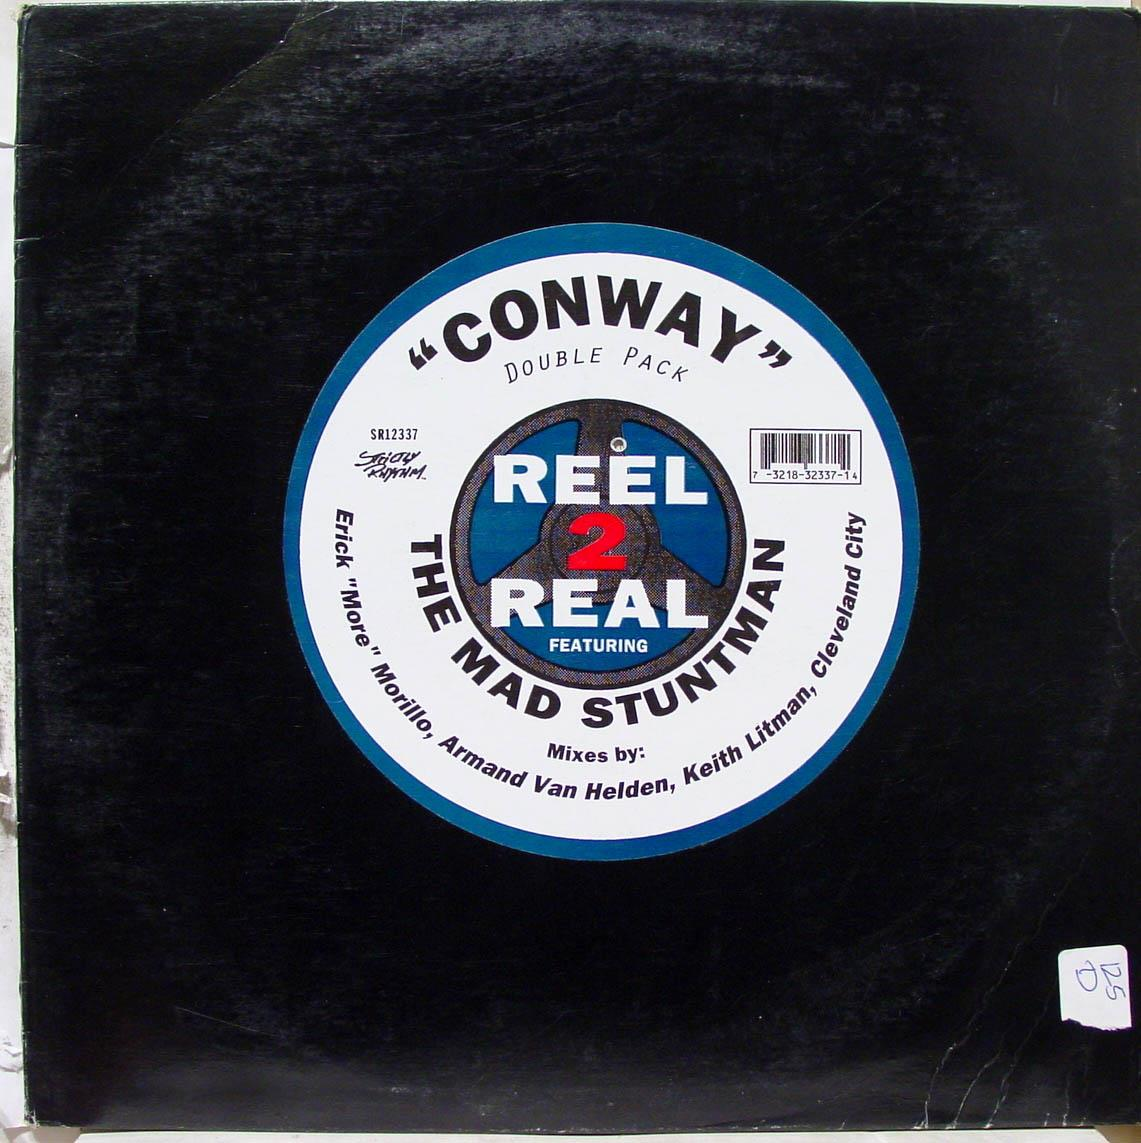 2x 12quot House Reel 2 Real The Mad Stuntman Conway Vg Sr 12337 Vinyl 1995 Record conway